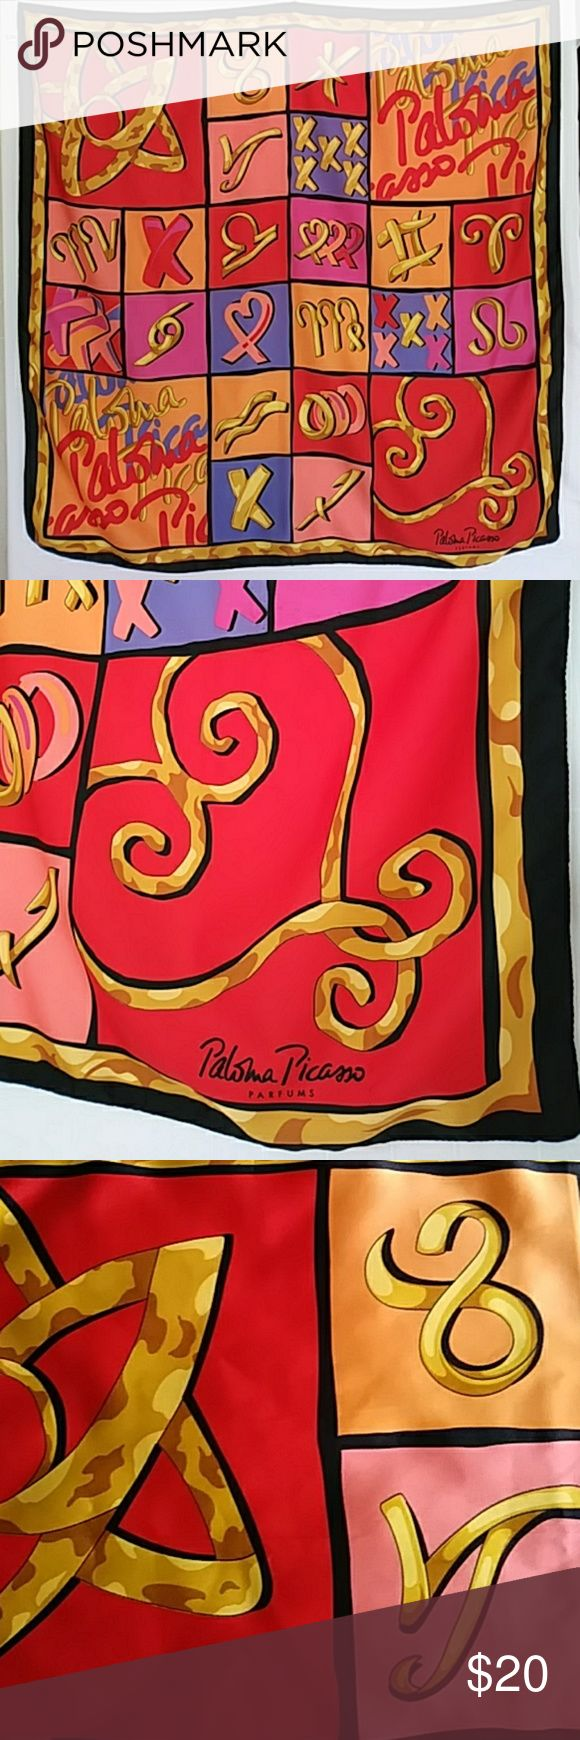 """Just in! PALOMA PICASSO Vintage Scarf PALOMA PICASSO PARFUMS Scarf. Vibrantly colorful. Vintage 1980's. Made in Italy. Preloved; some almost indiscernible spots throughout likely due to use of detergent and one short pulled thread near signature (priced accordingly and please see photos). Black border; red, gold, fuchsia pink, peach, coral, blue. 34"""" square.   Colorblock Paloma Picasso Accessories Scarves & Wraps"""